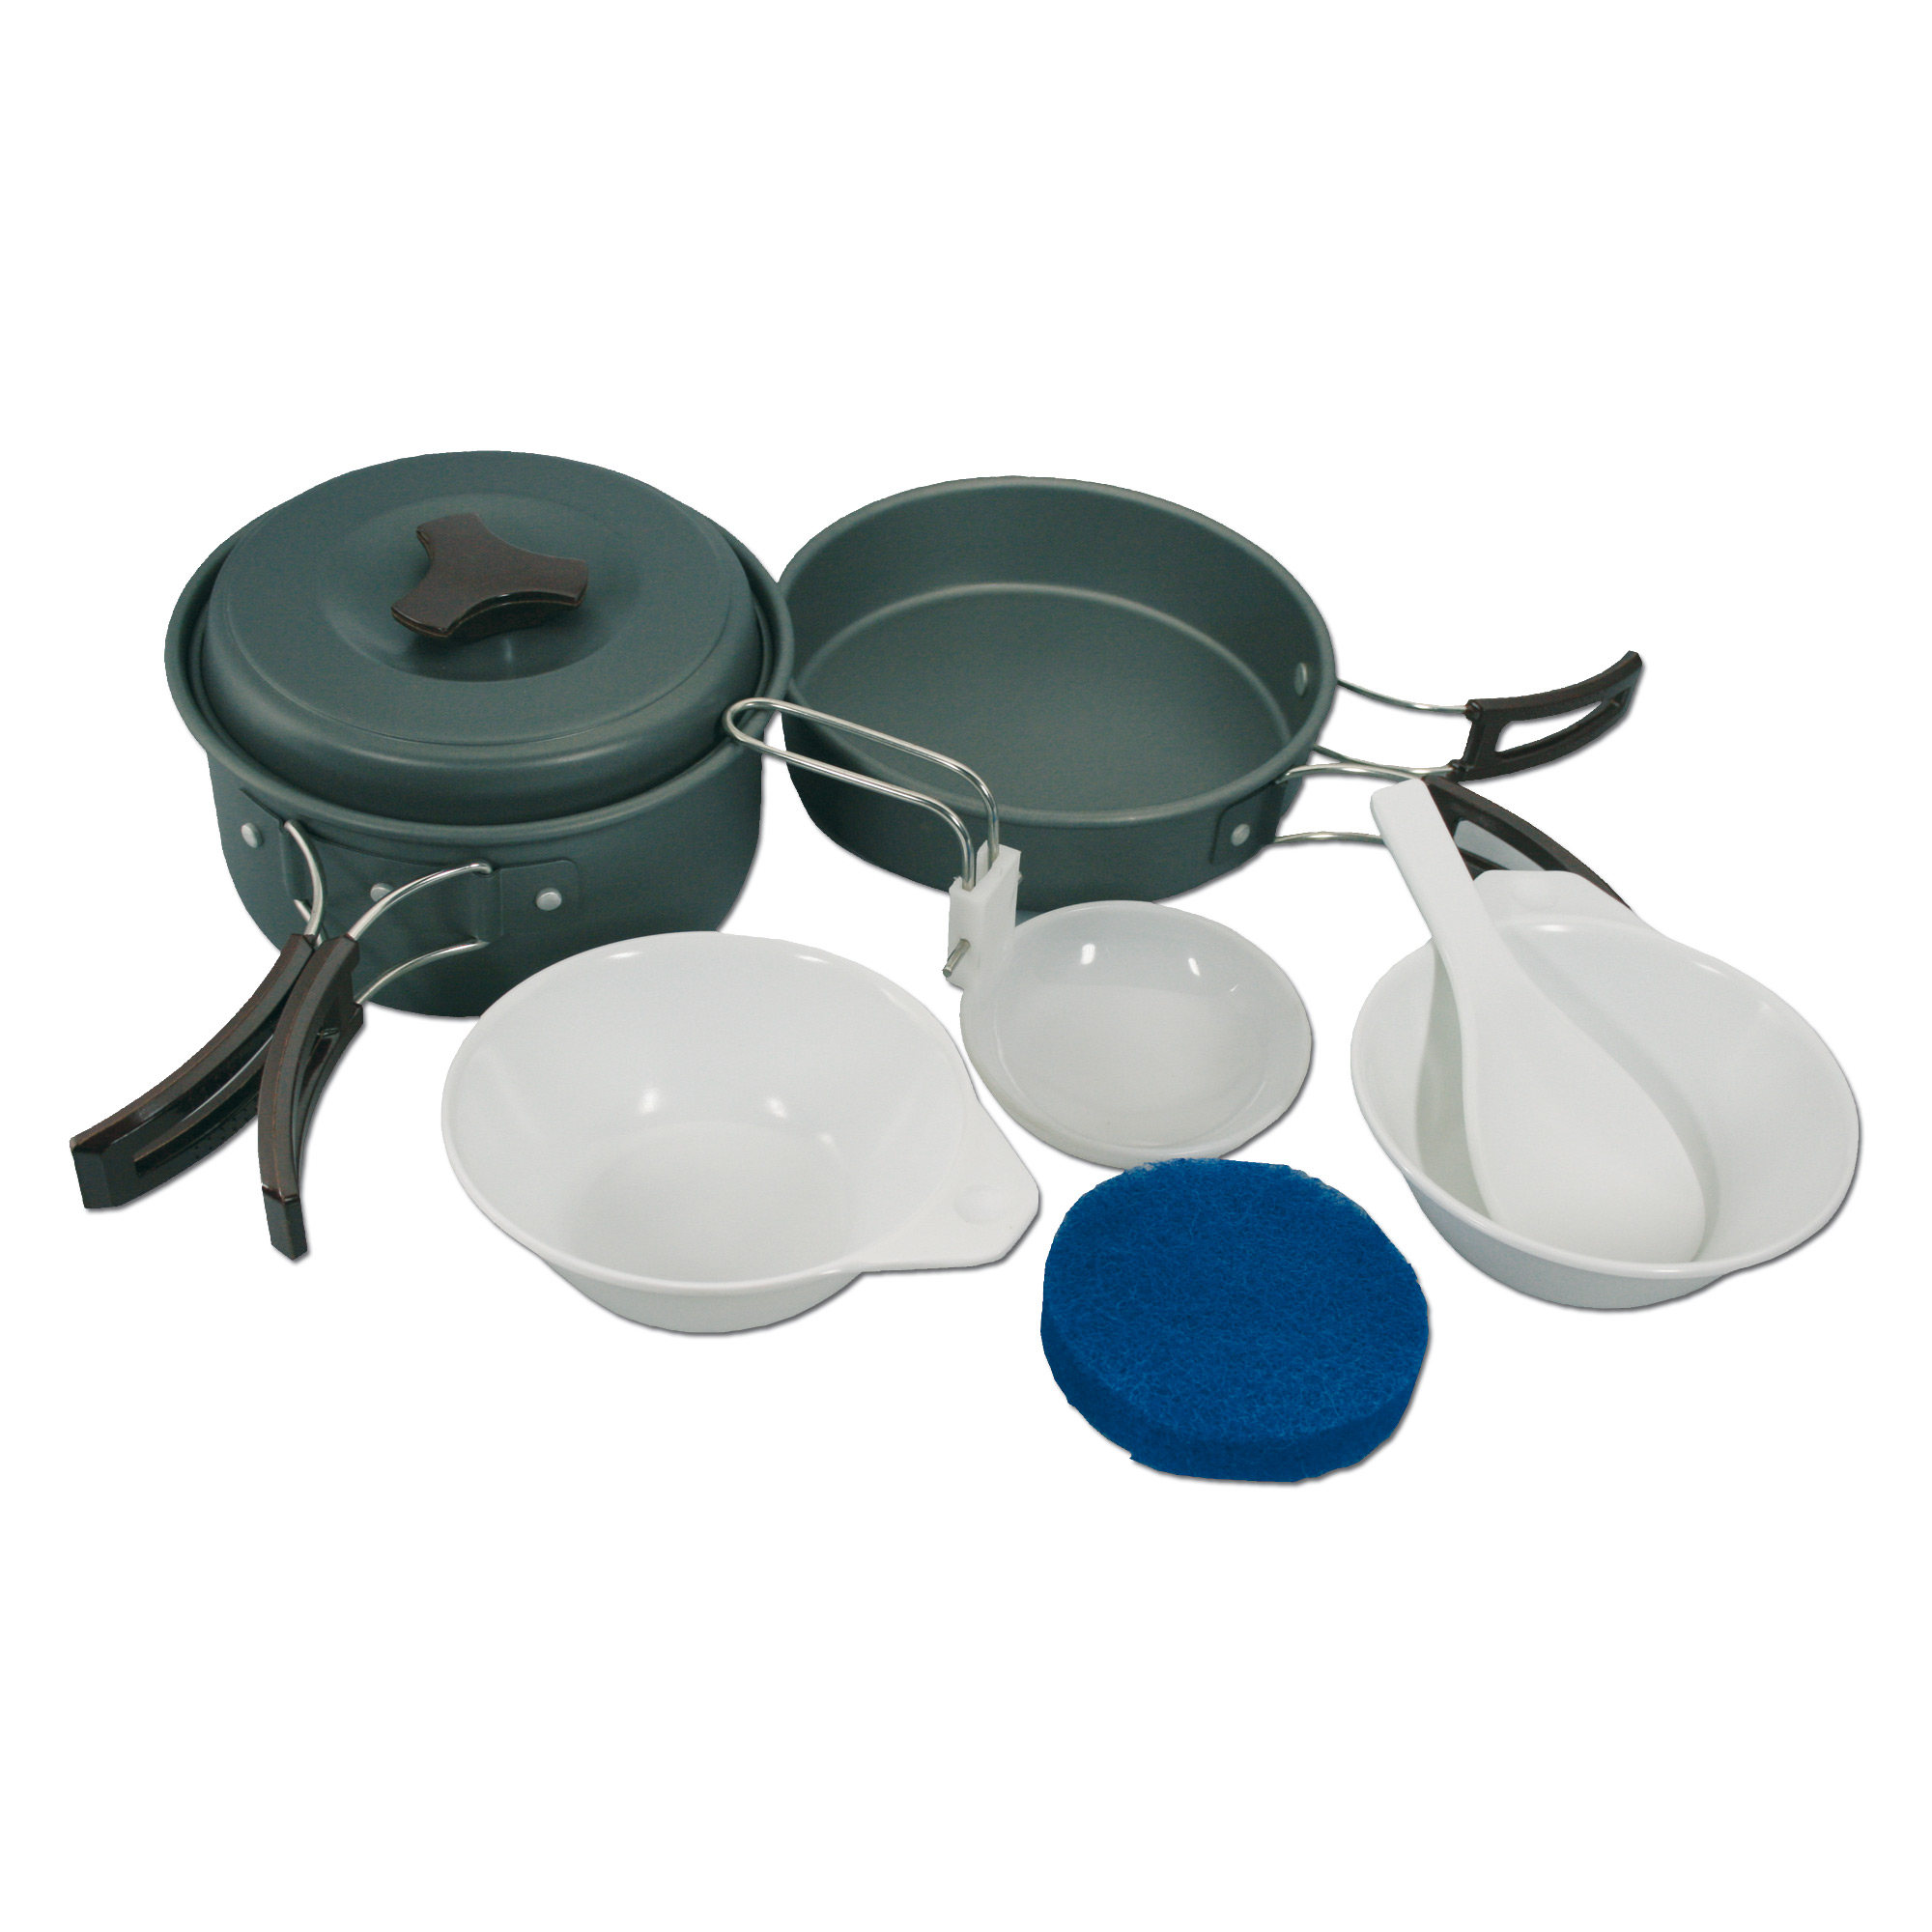 Cook Set Mil-Tec 2-persons alu anodized